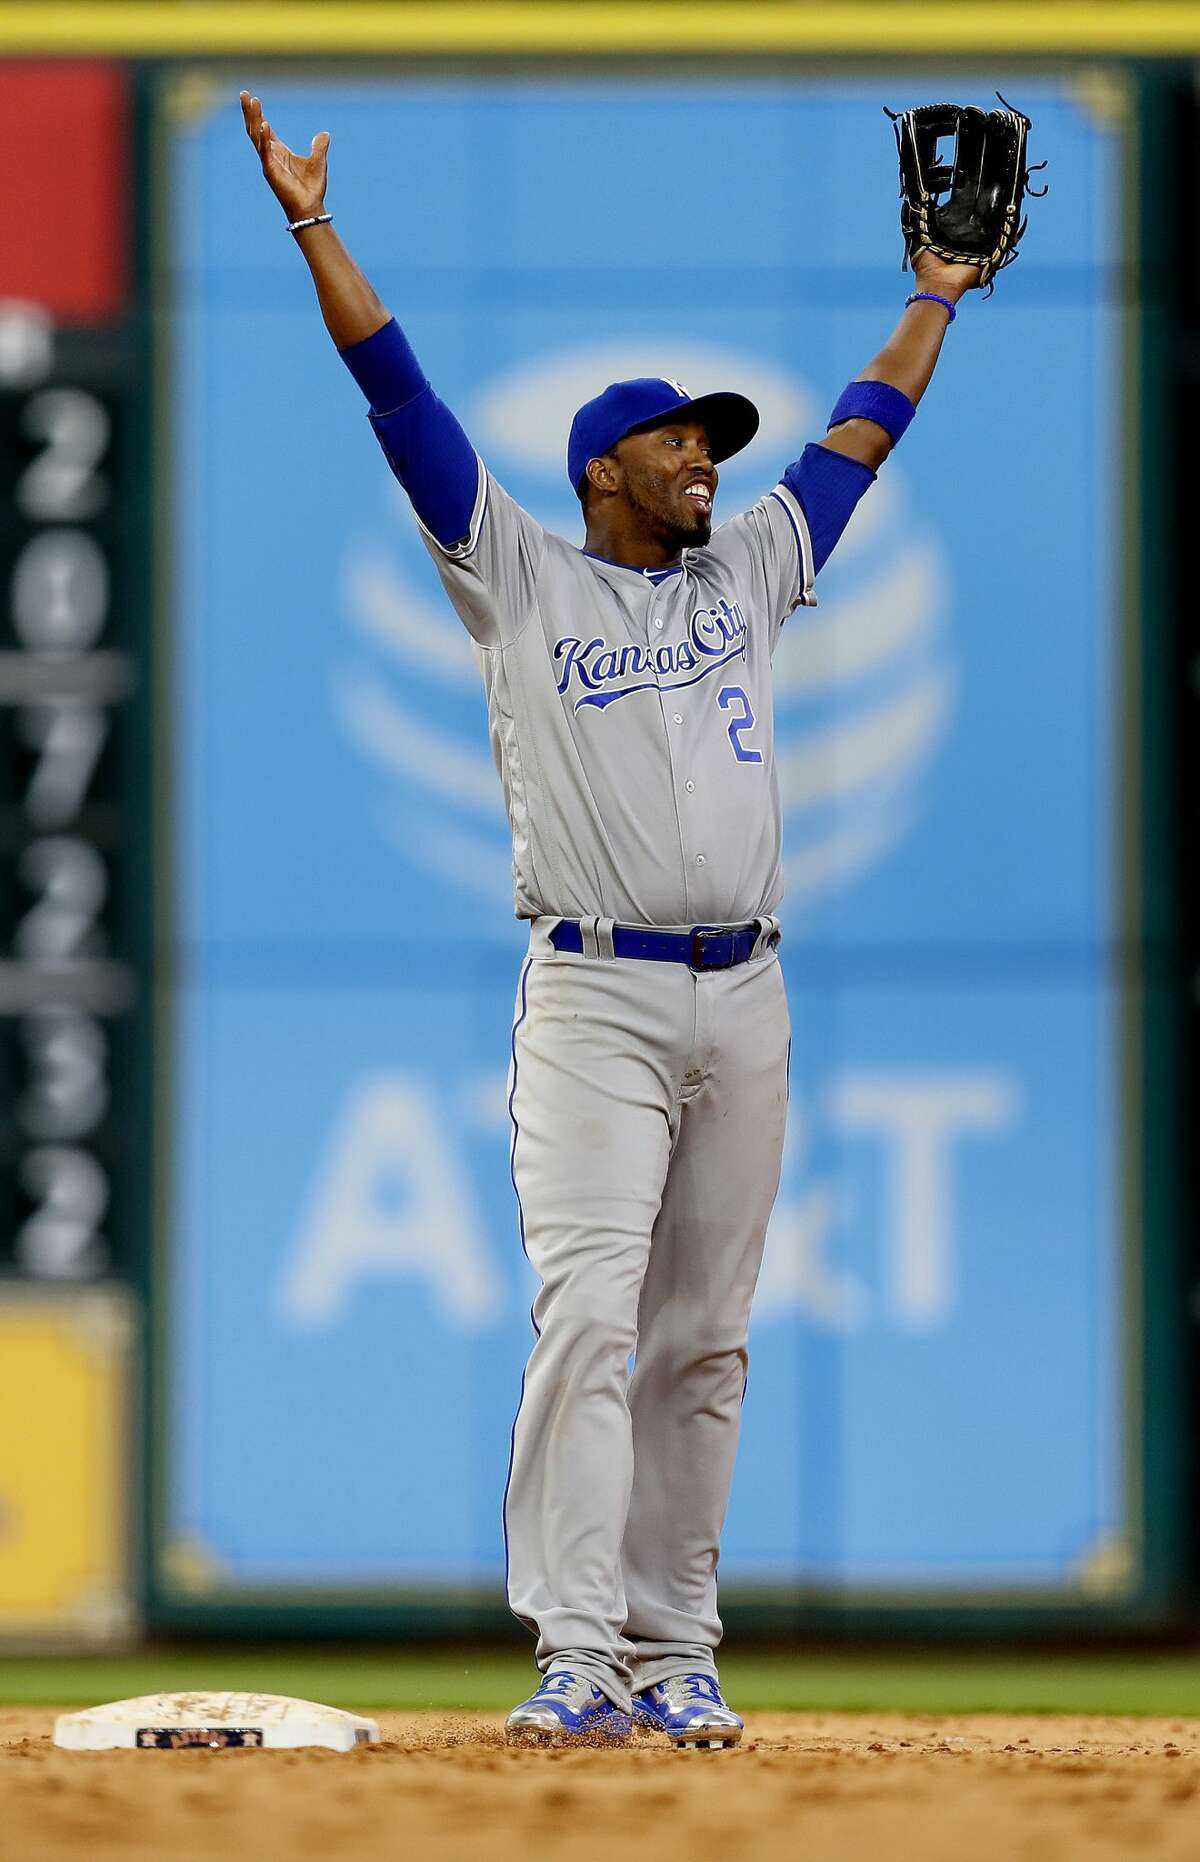 Kansas City Royals shortstop Alcides Escobar (2) reacts after the Royals beat the Astros 5-1 after an MLB baseball game at Minute Maid Park, Friday, April 7, 2017, in Houston. ( Karen Warren / Houston Chronicle )